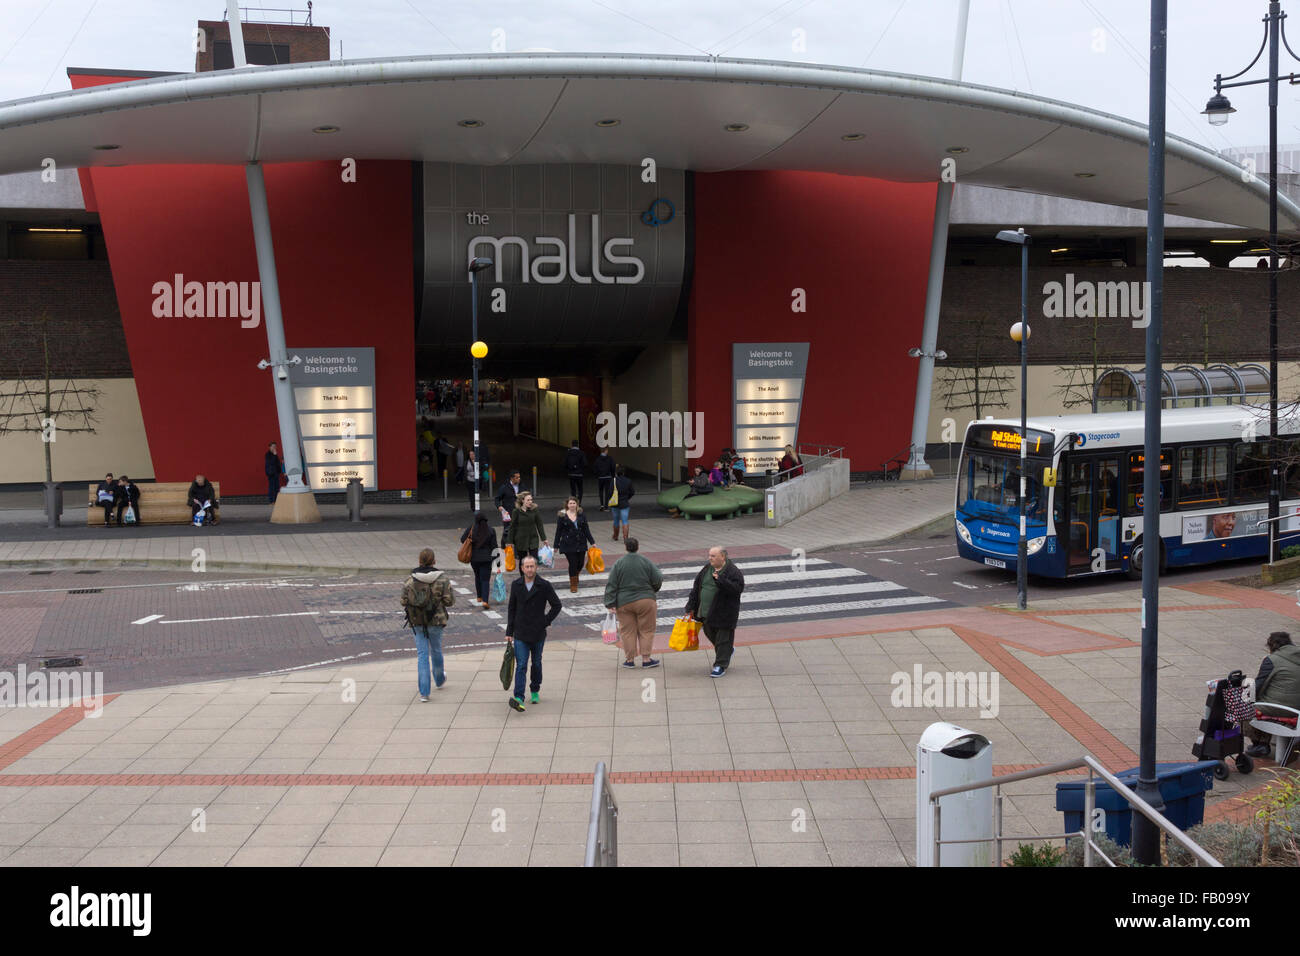 'The Malls' in Basingstoke as viewed from outside the train station - Stock Image